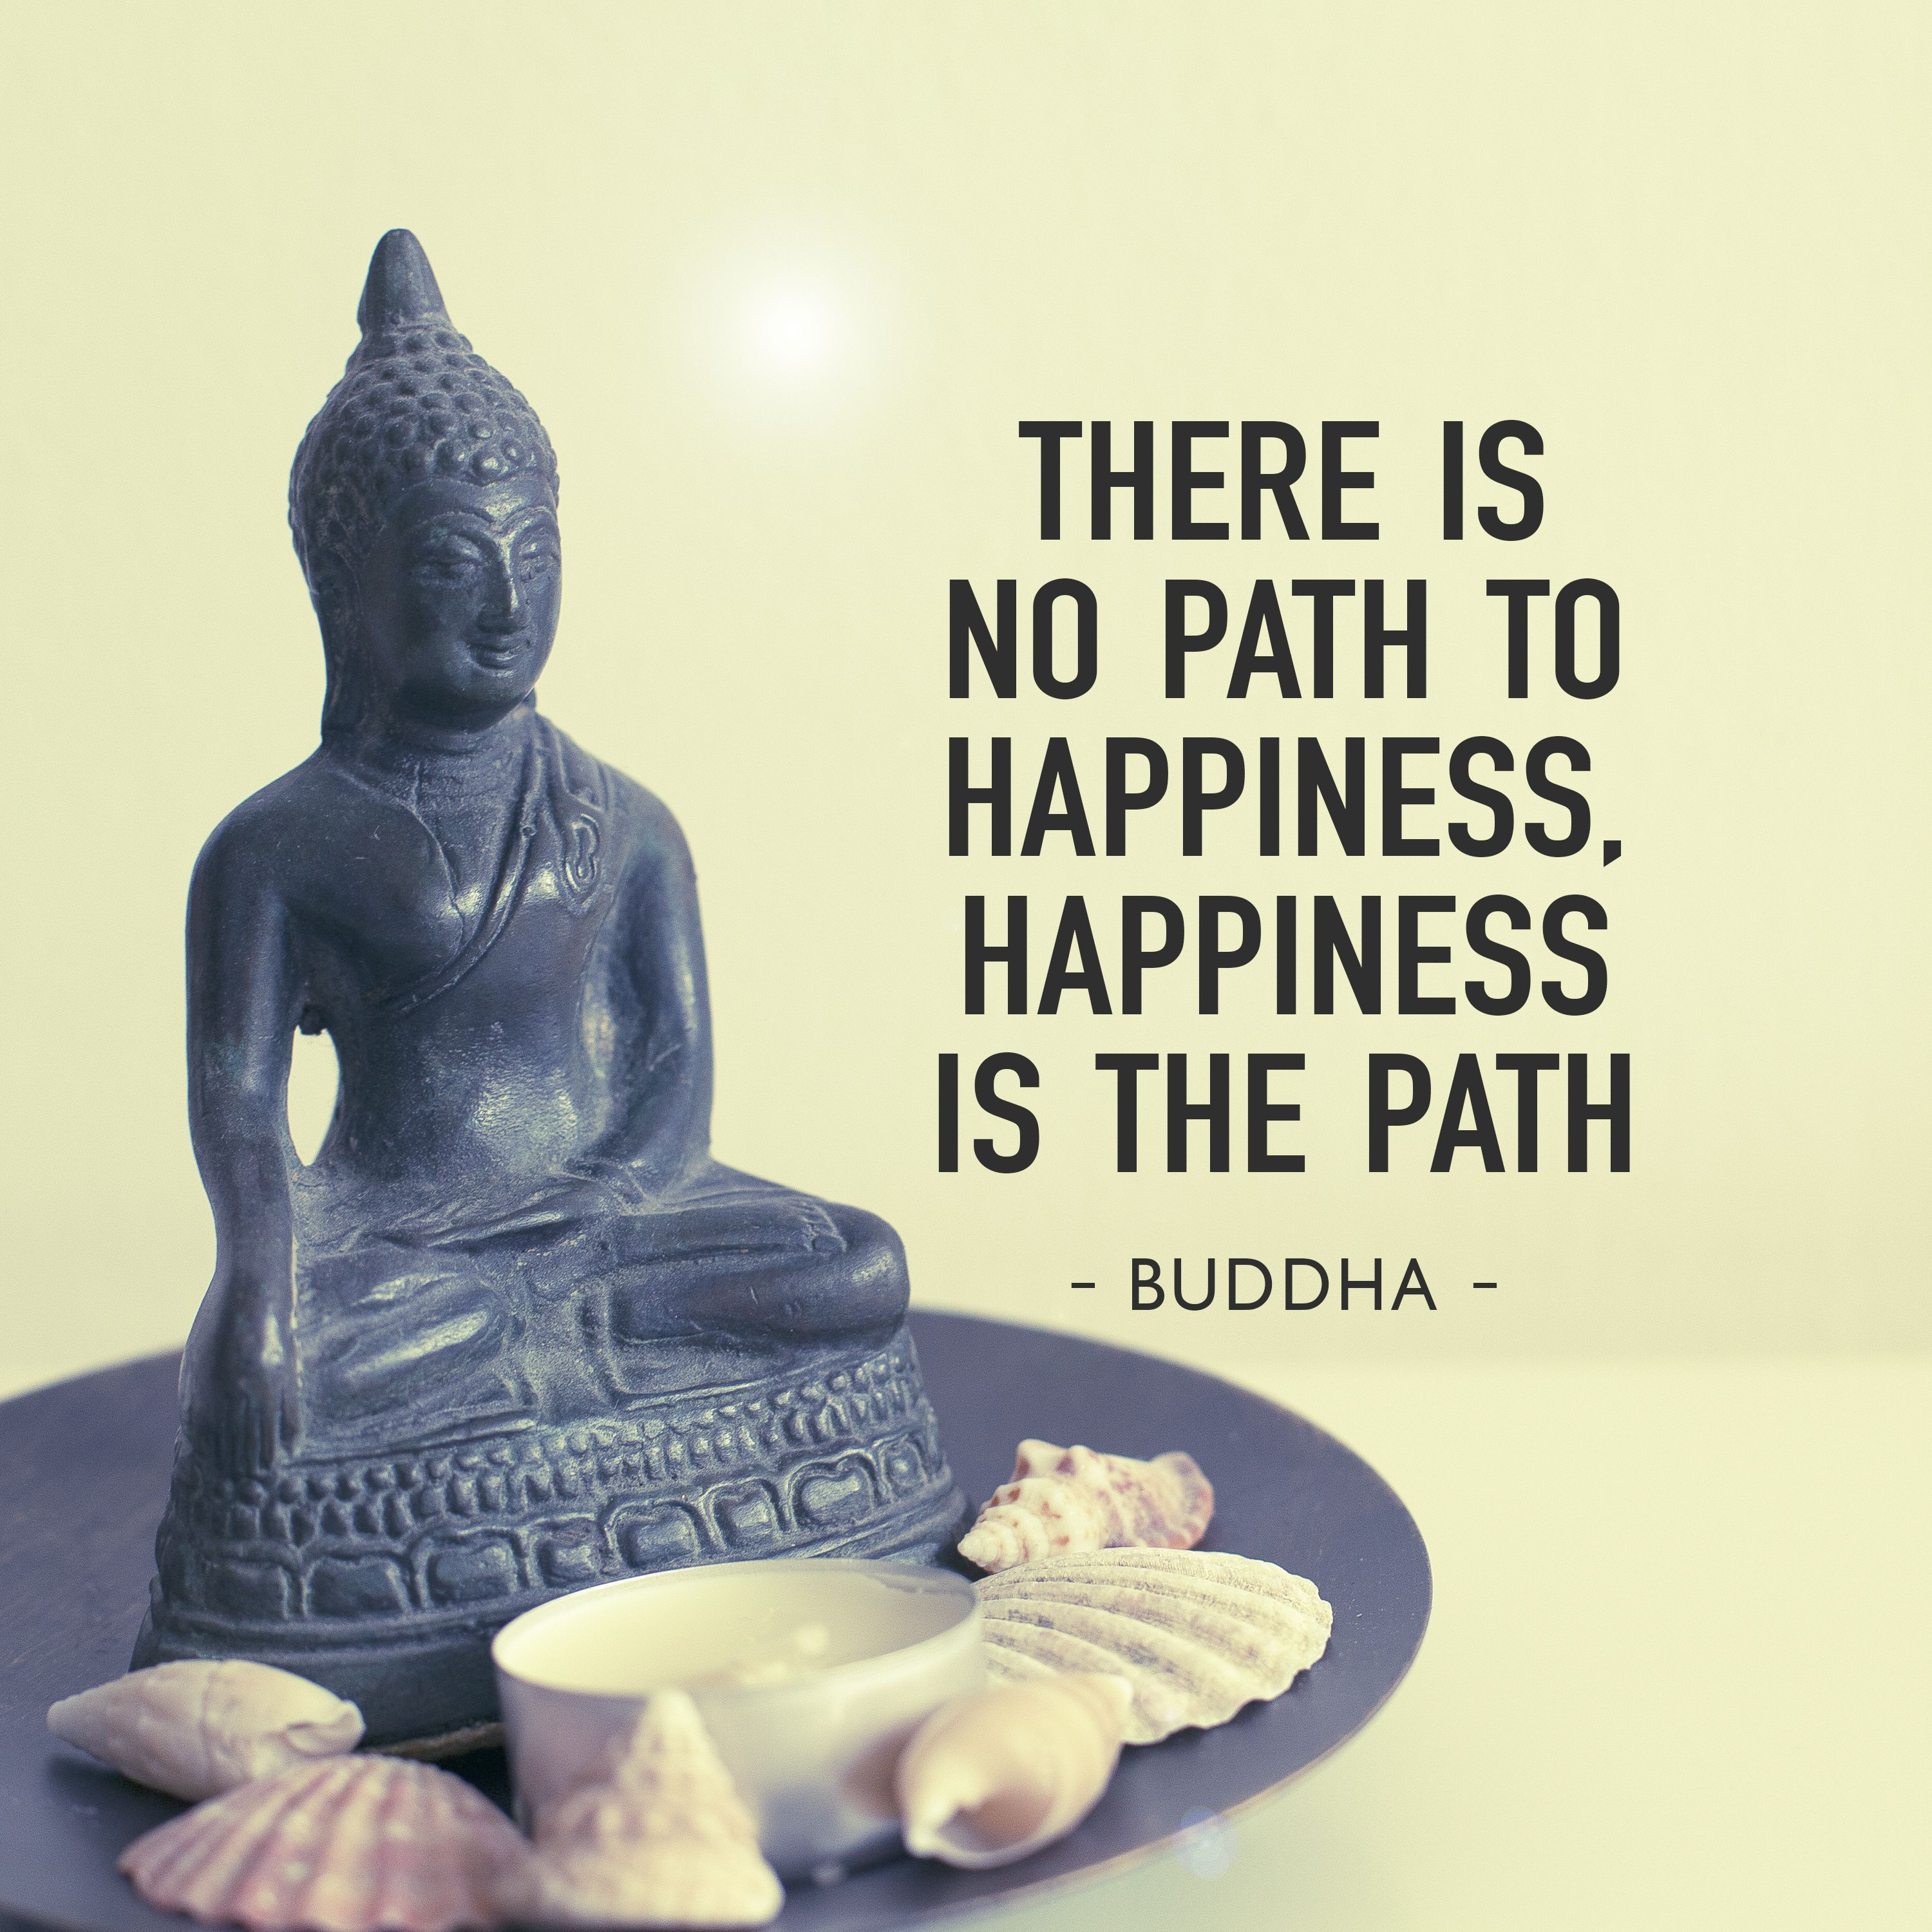 There Is No Path To Happiness happiness Is The Path Budha Quote Orange Art print Happiness Quote Path To Happiness Buddha Print